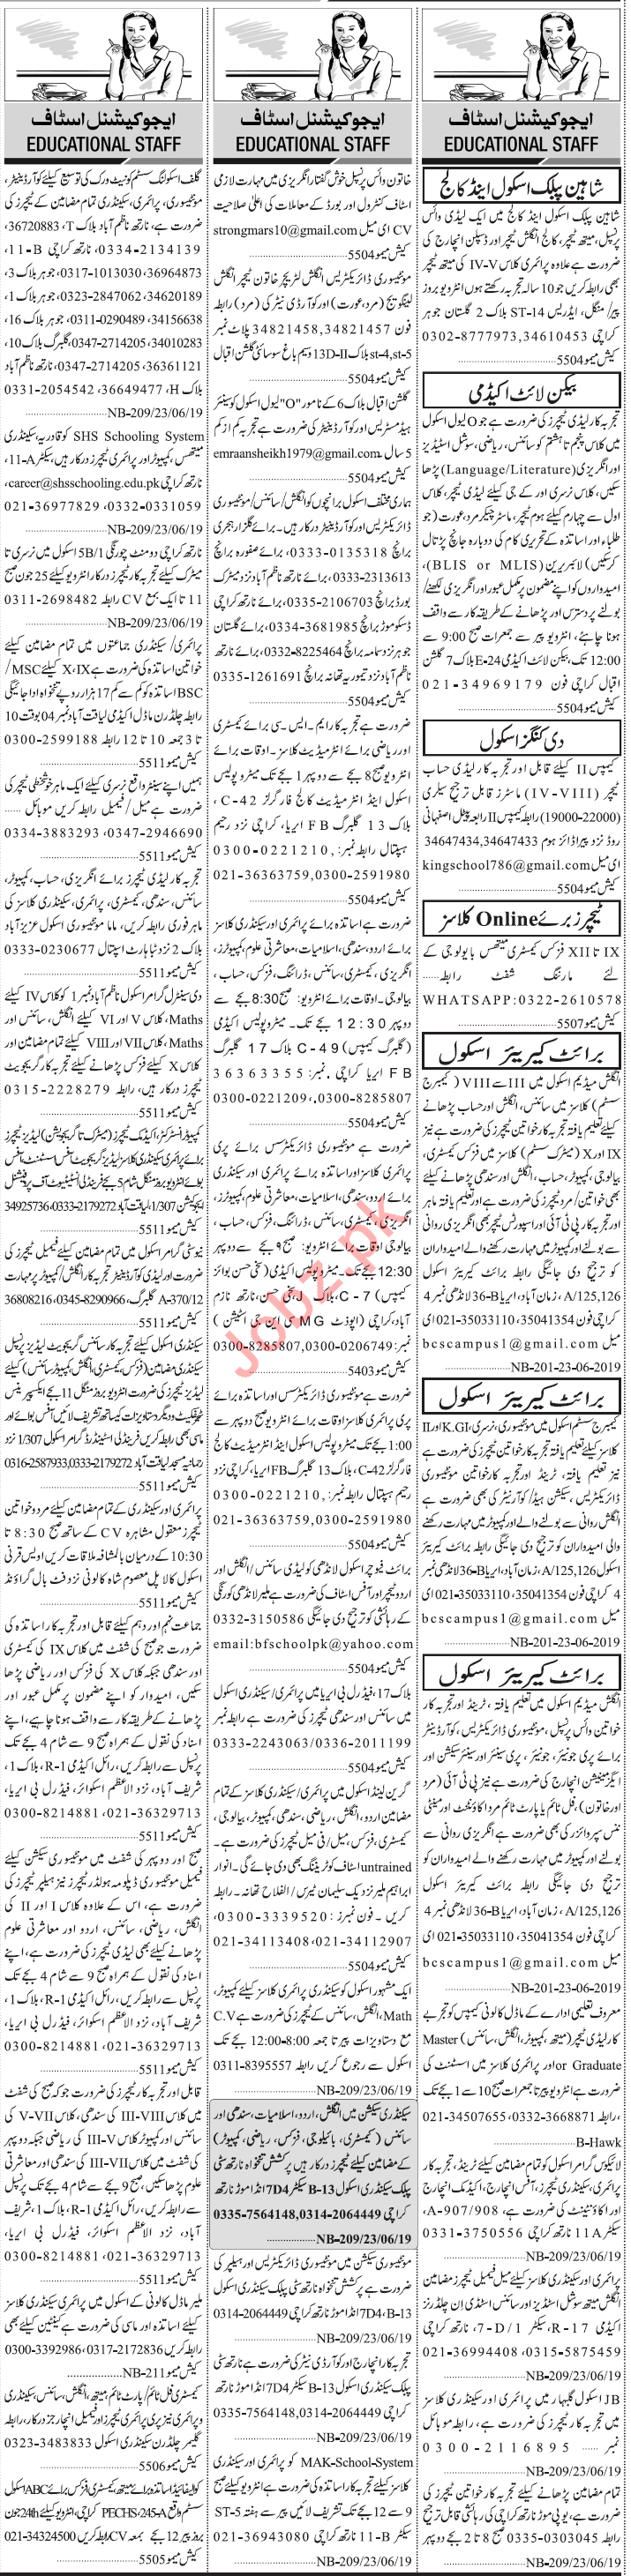 Jang Sunday Classified Ads 14th July 2019 for Teaching Staff